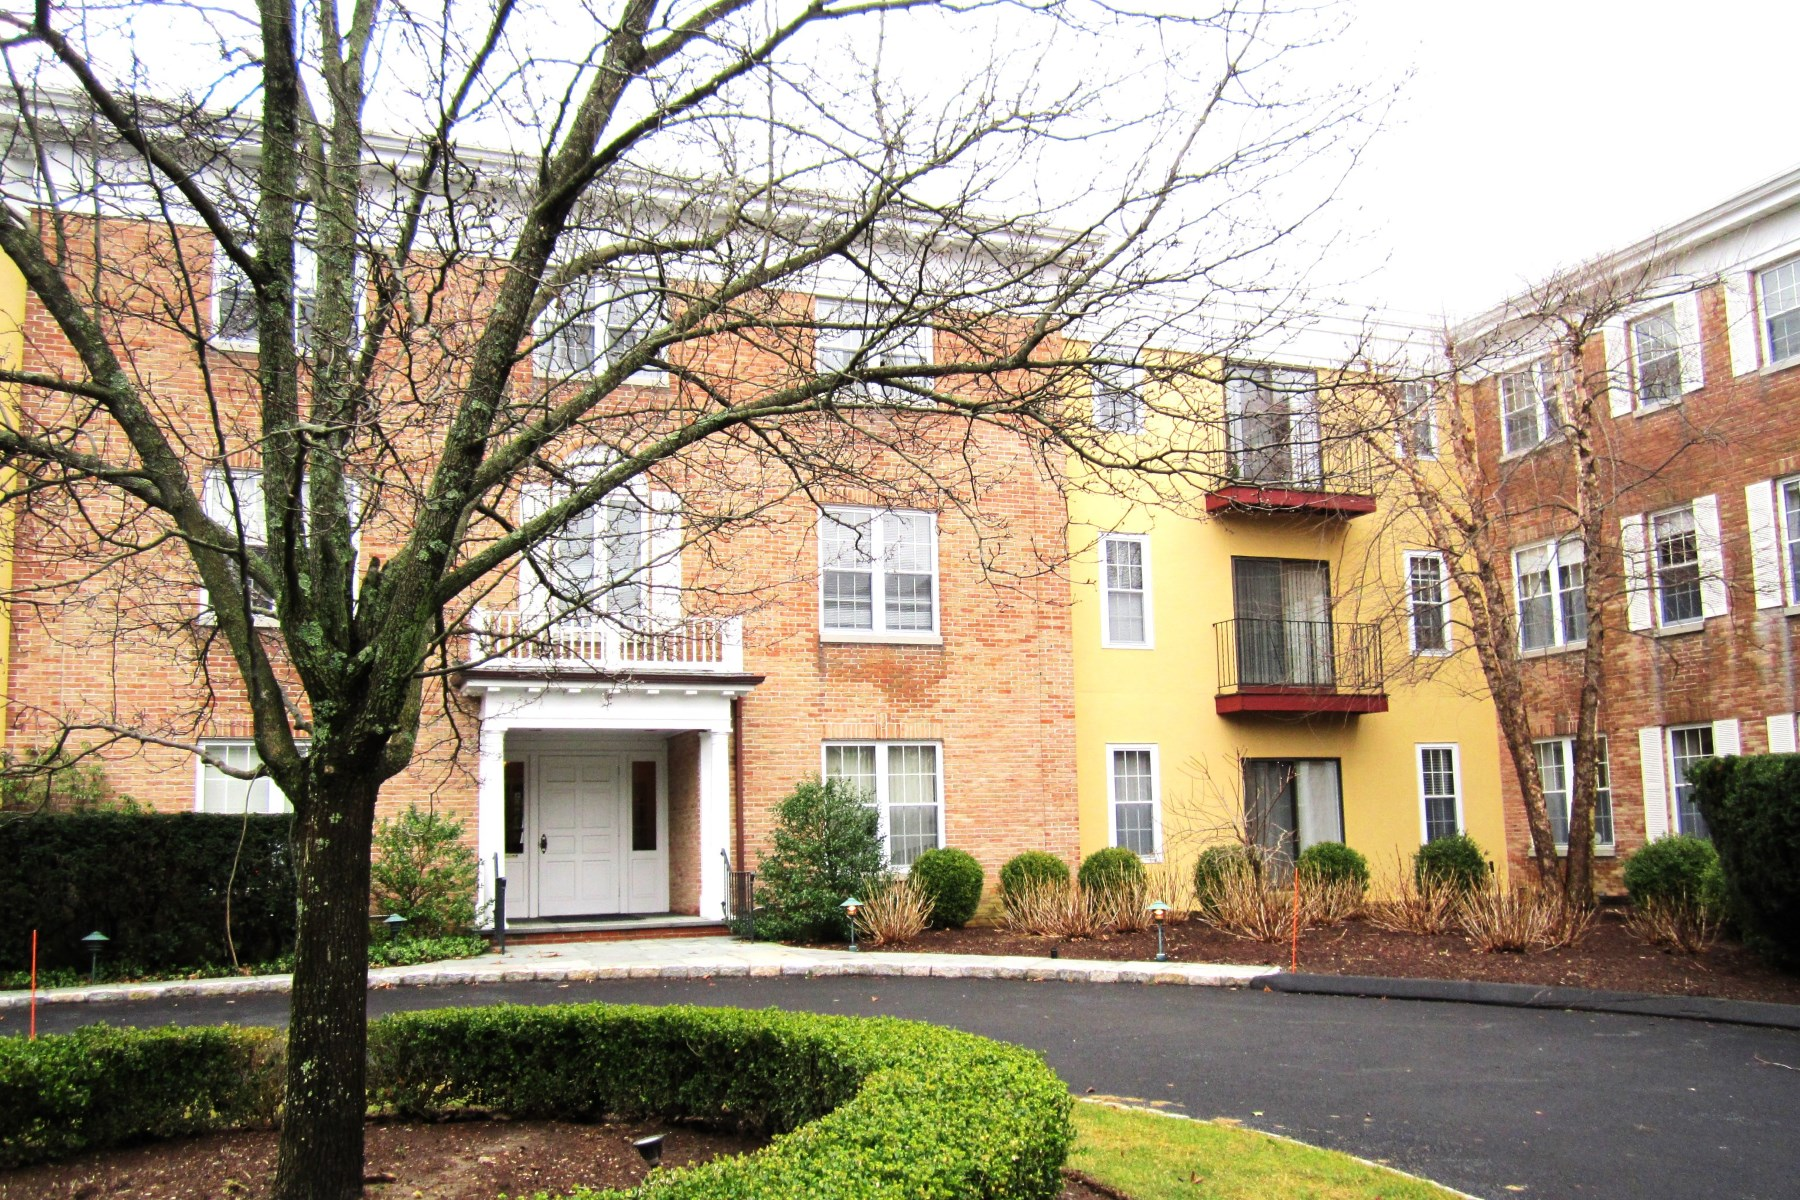 Condominium for Sale at Central Greenwich Condominium 140 Field Point Road, Unit 36 Central Greenwich, Greenwich, Connecticut, 06830 United States